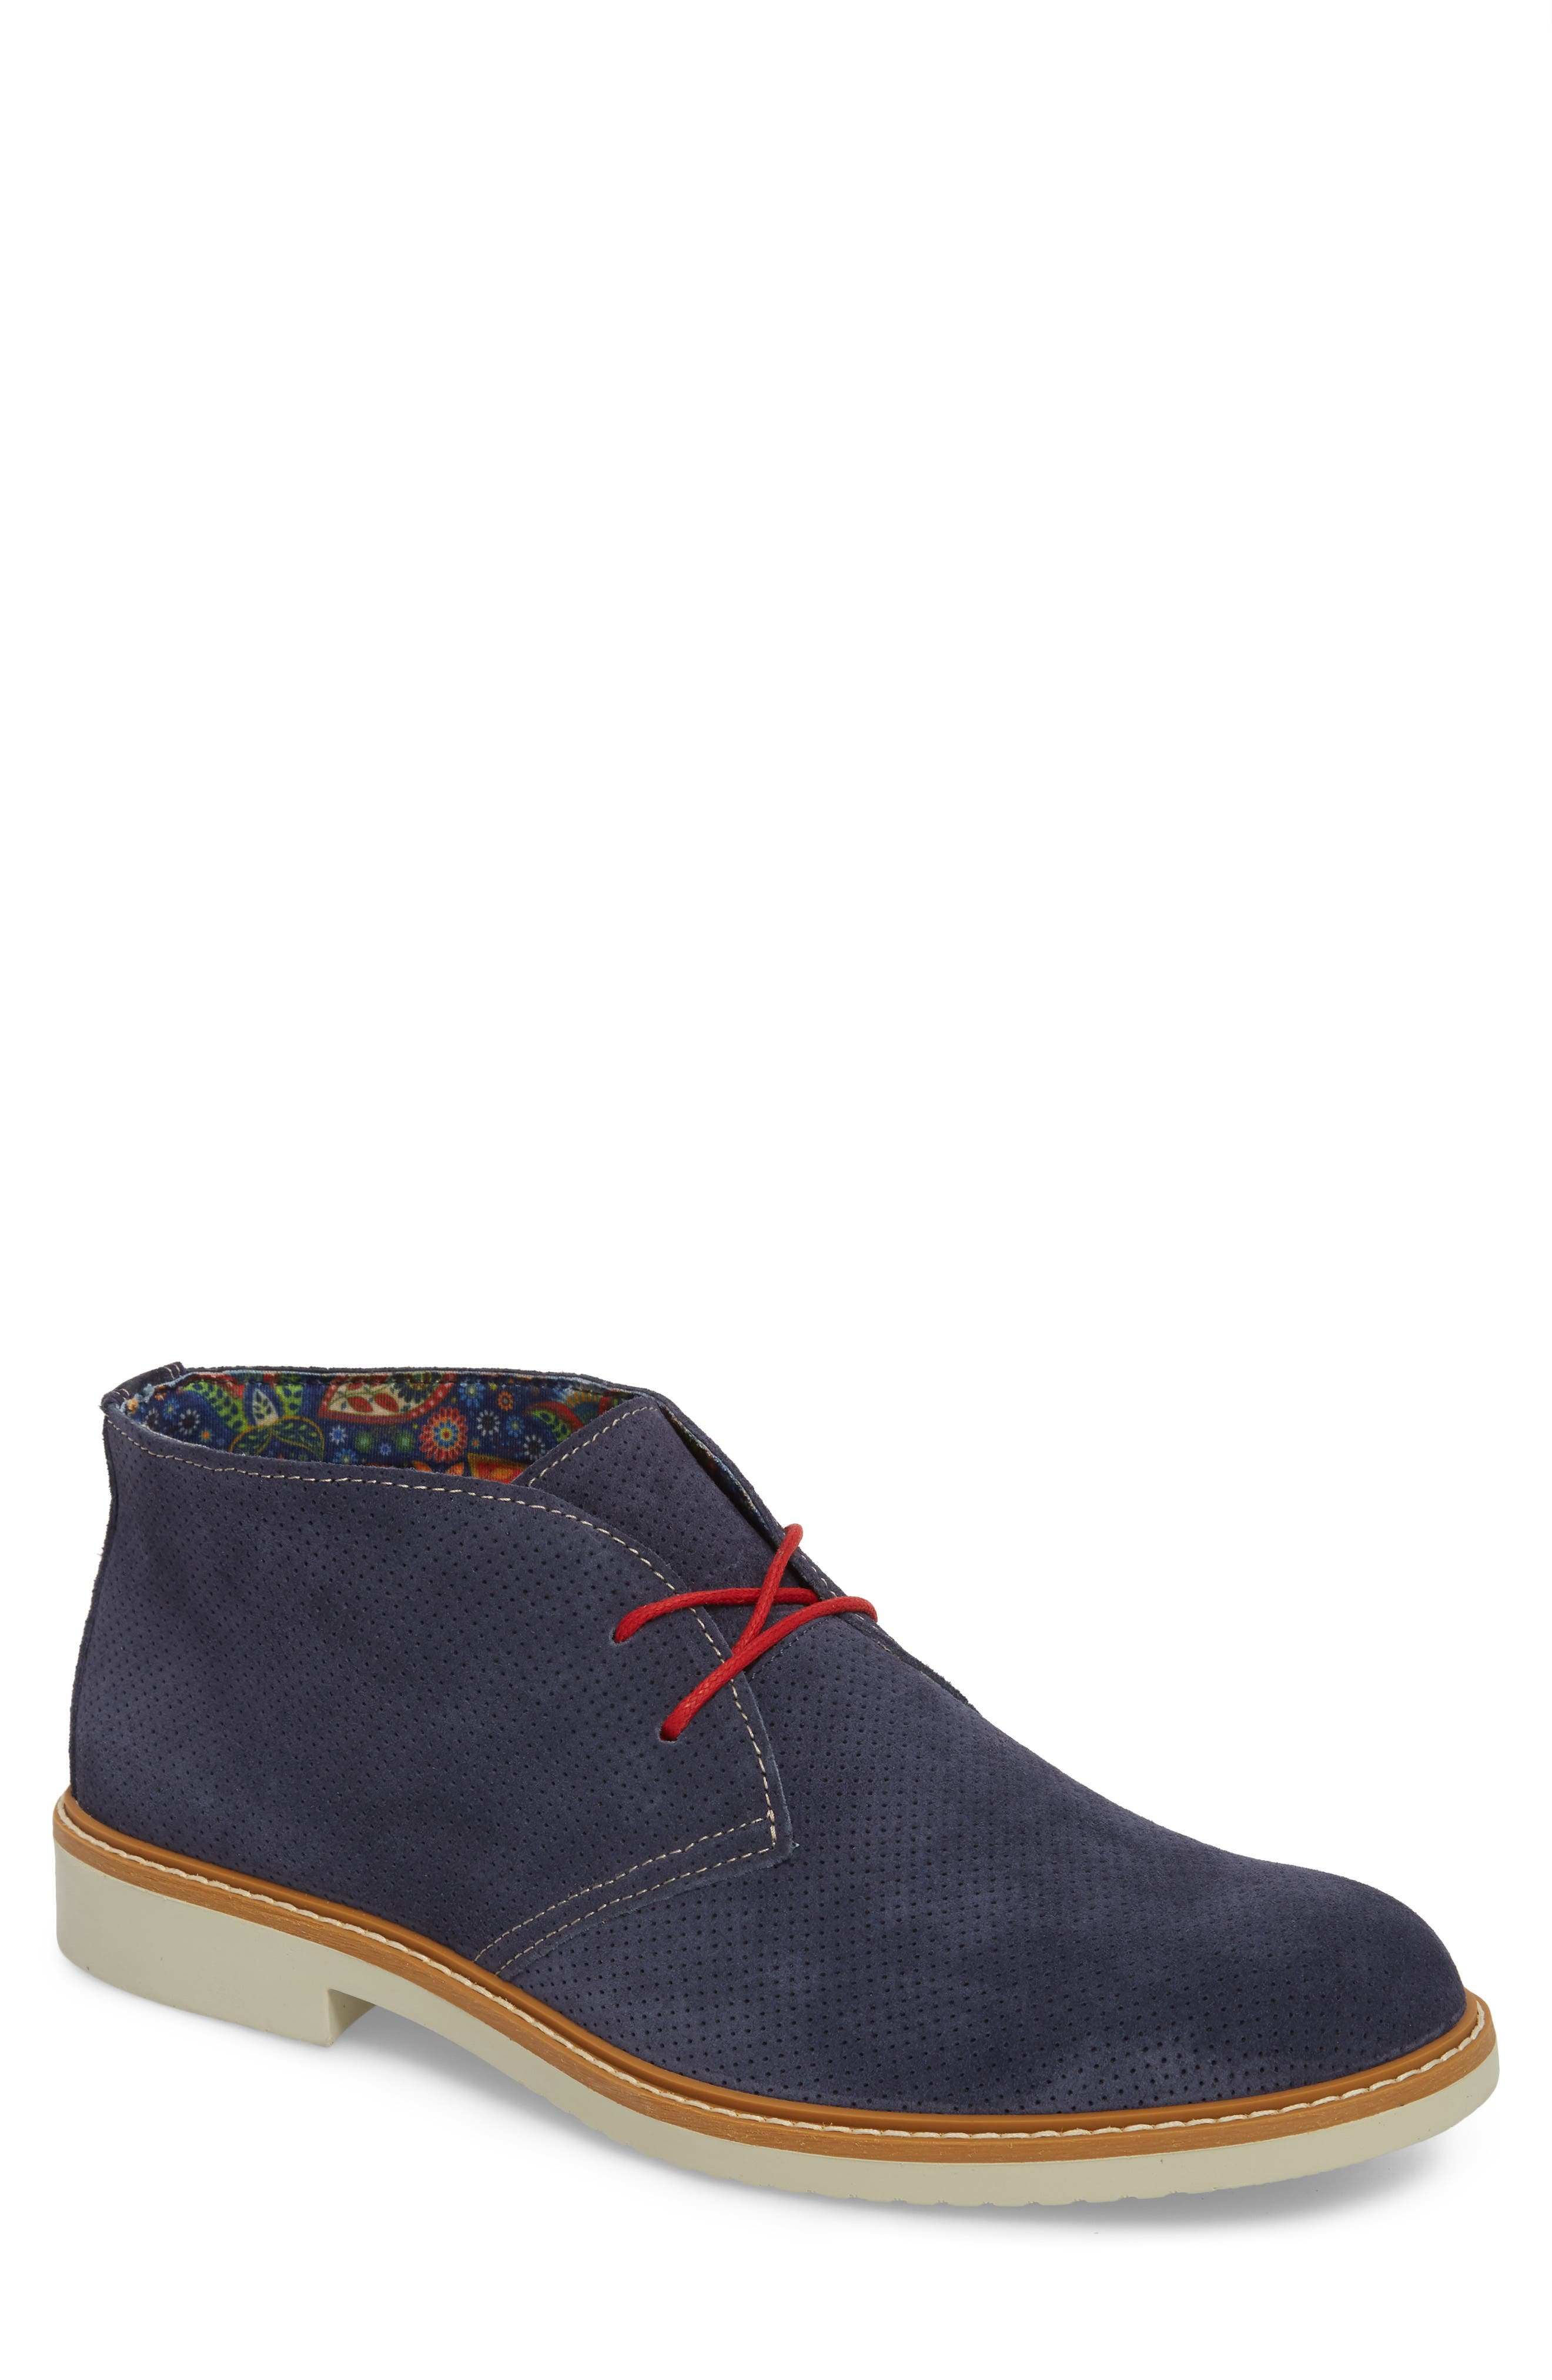 Bayside Perforated Chukka Boot,                             Main thumbnail 1, color,                             Blue Suede